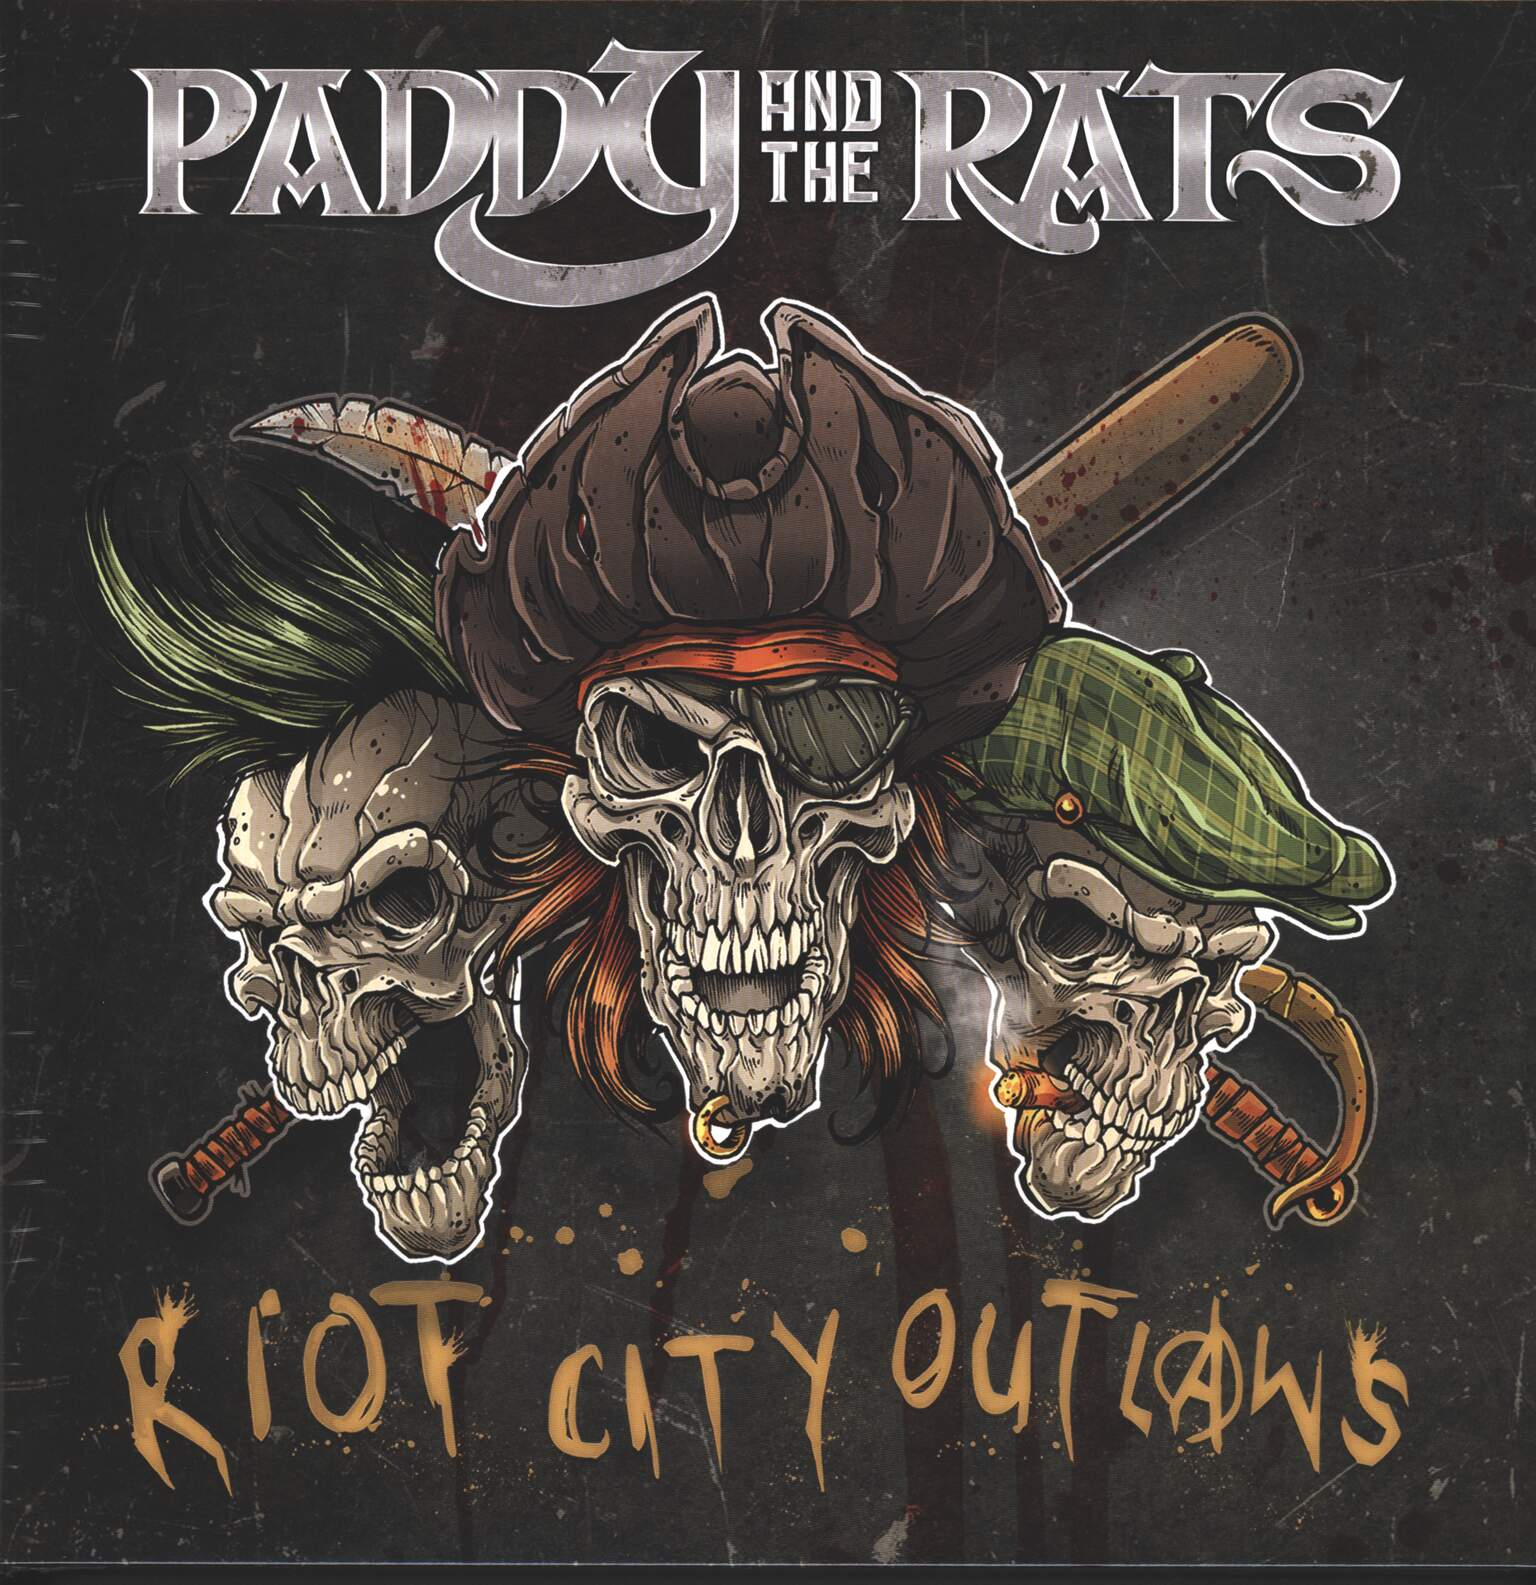 Paddy and the Rats: Riot City Outlaws, 1×LP (Vinyl)